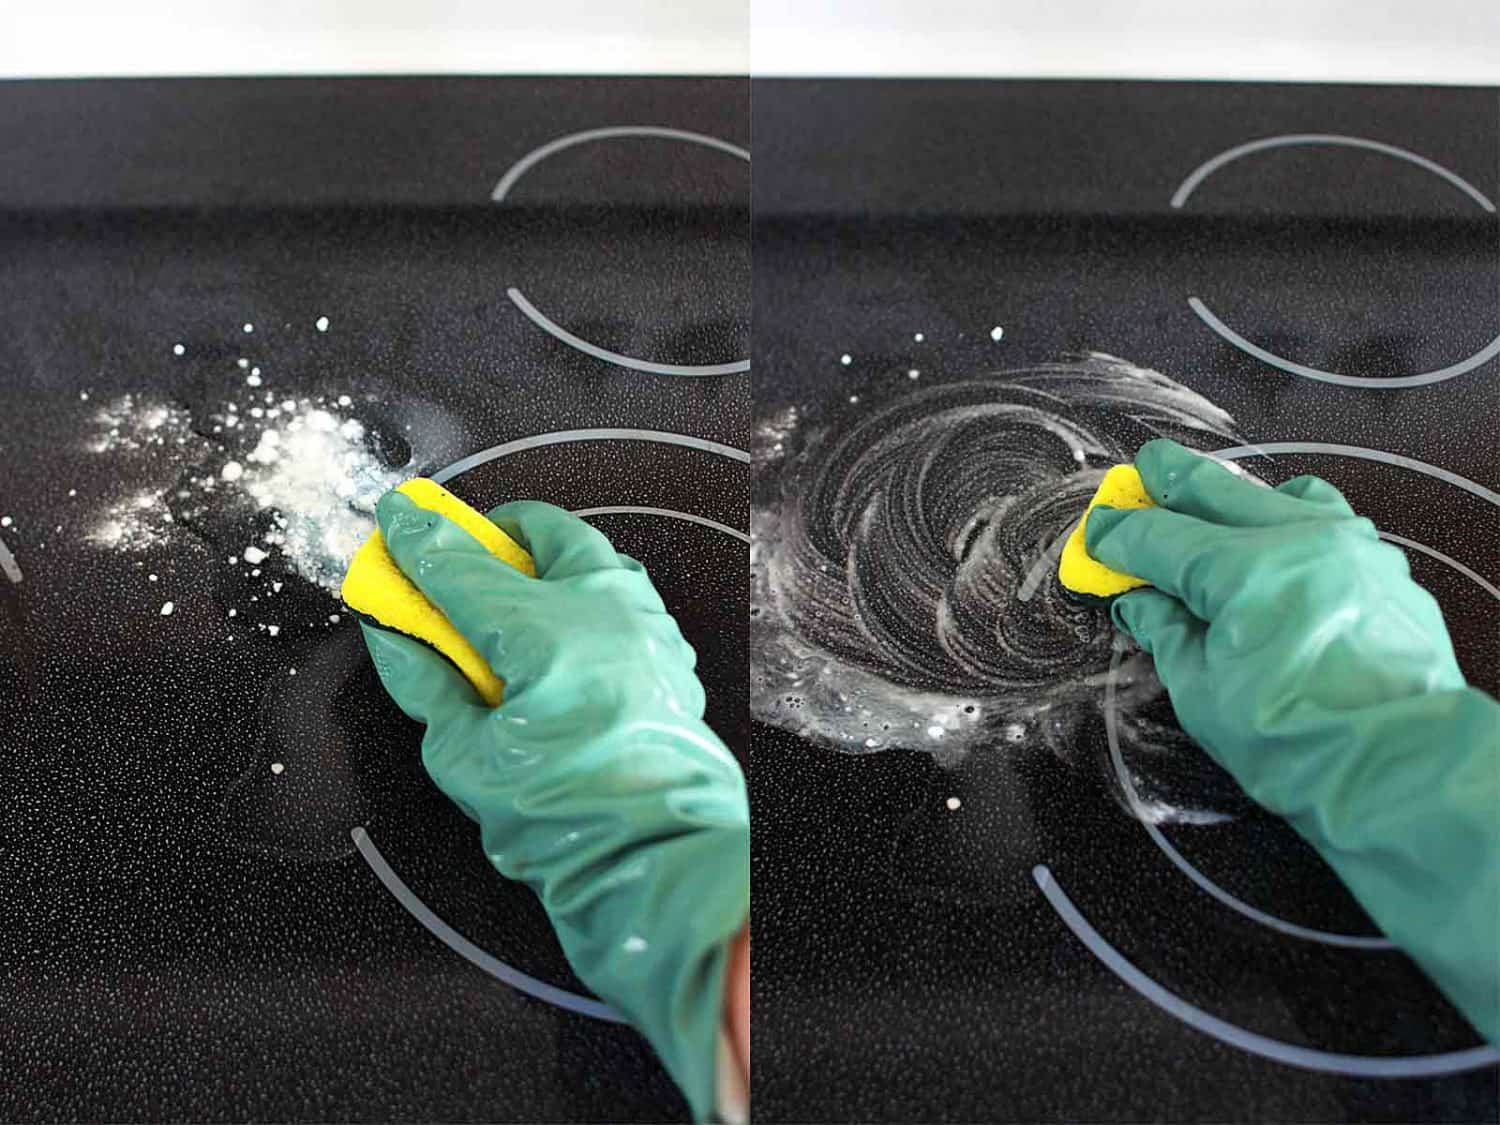 a gloved hand is scrubbing a stovetop.